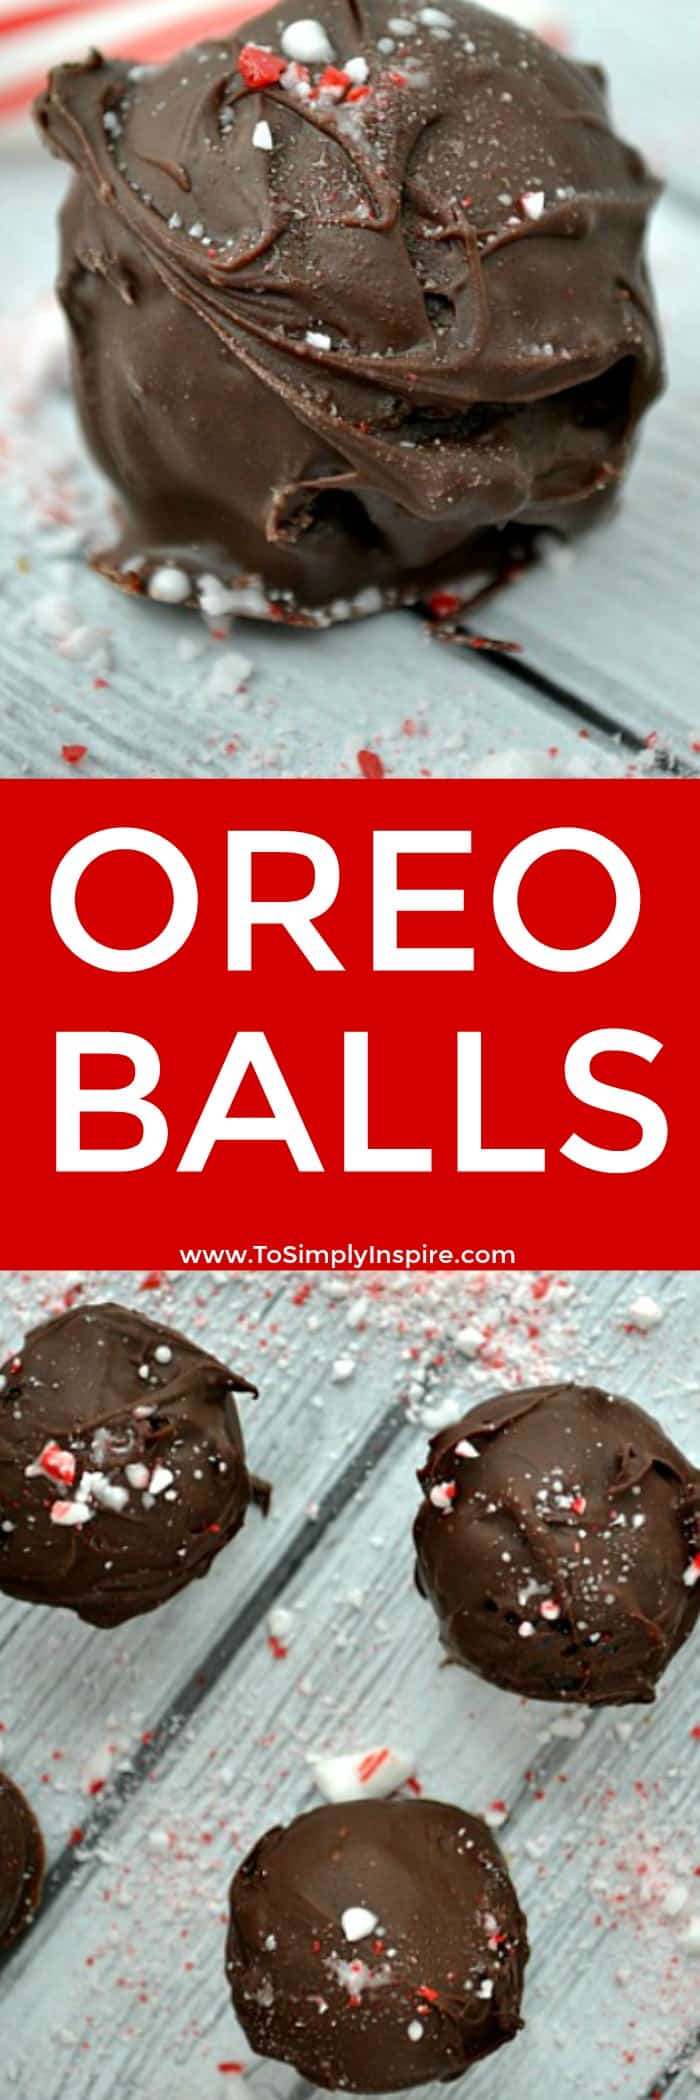 This Oreo Balls Recipe is simple but scrumptious. 3 ingredients is all you need. Take them to any party and they will be a favorite for sure.